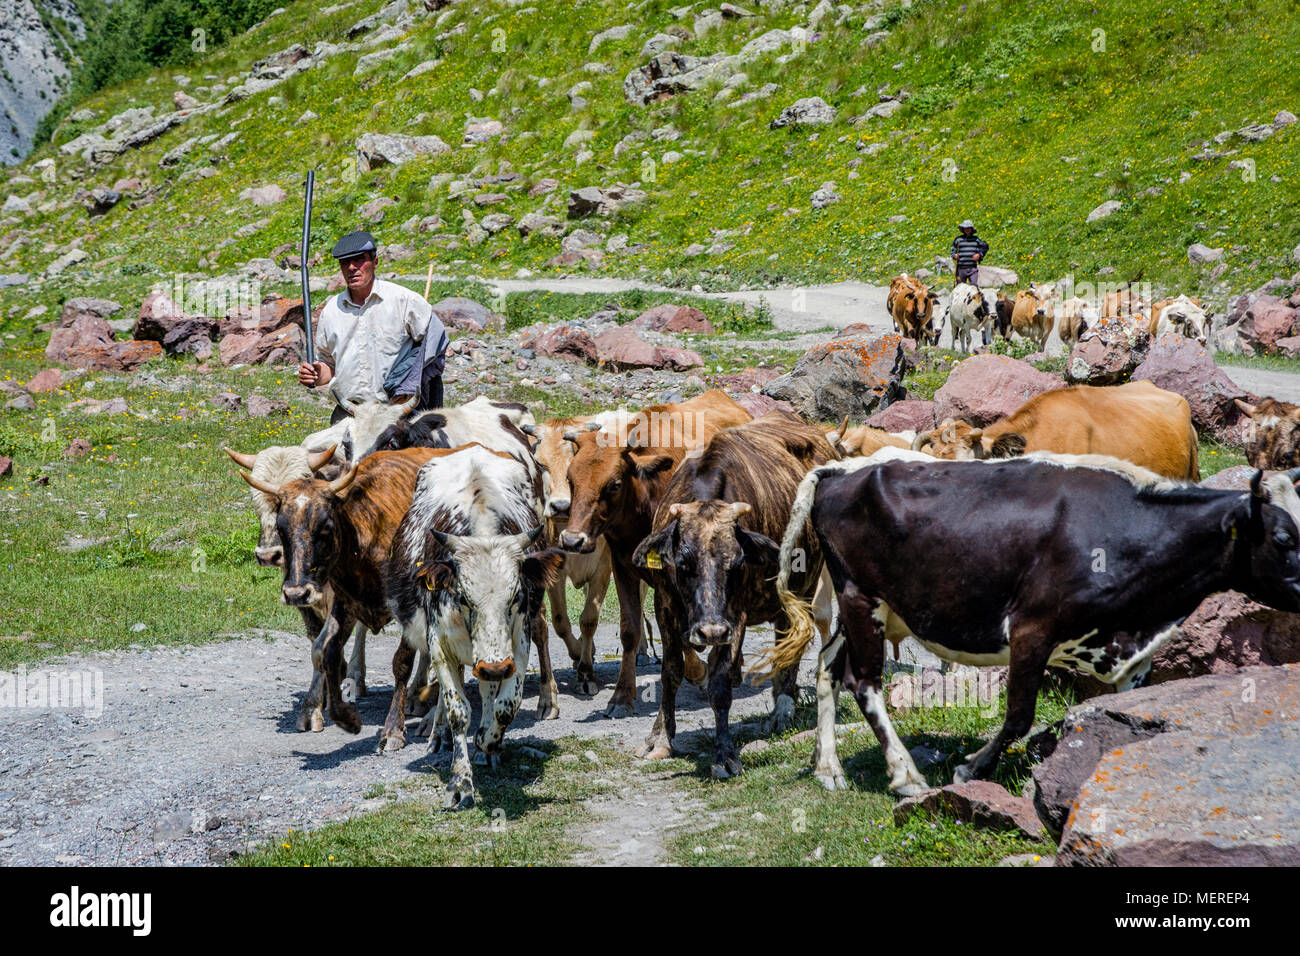 TRUSO VALLEY, GEORGIA - JULY 17: Shepherd guiding herd of cows in Truso valley. July 2017 - Stock Image